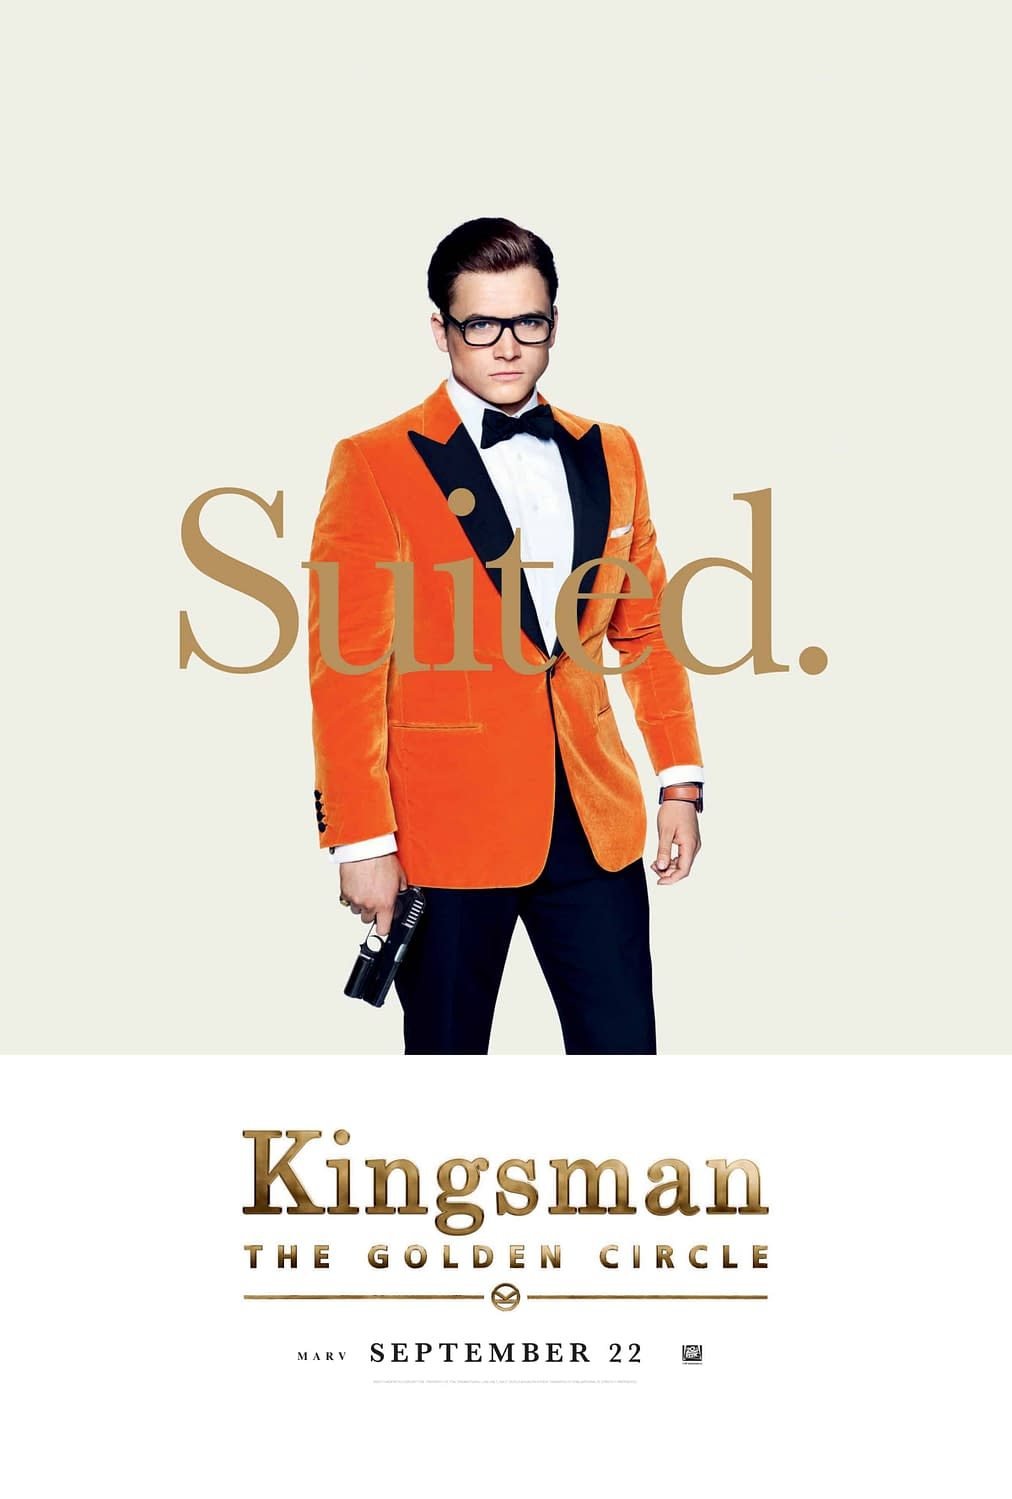 Taron Egerton Confirms He's Not Appearing in Kingsman 3